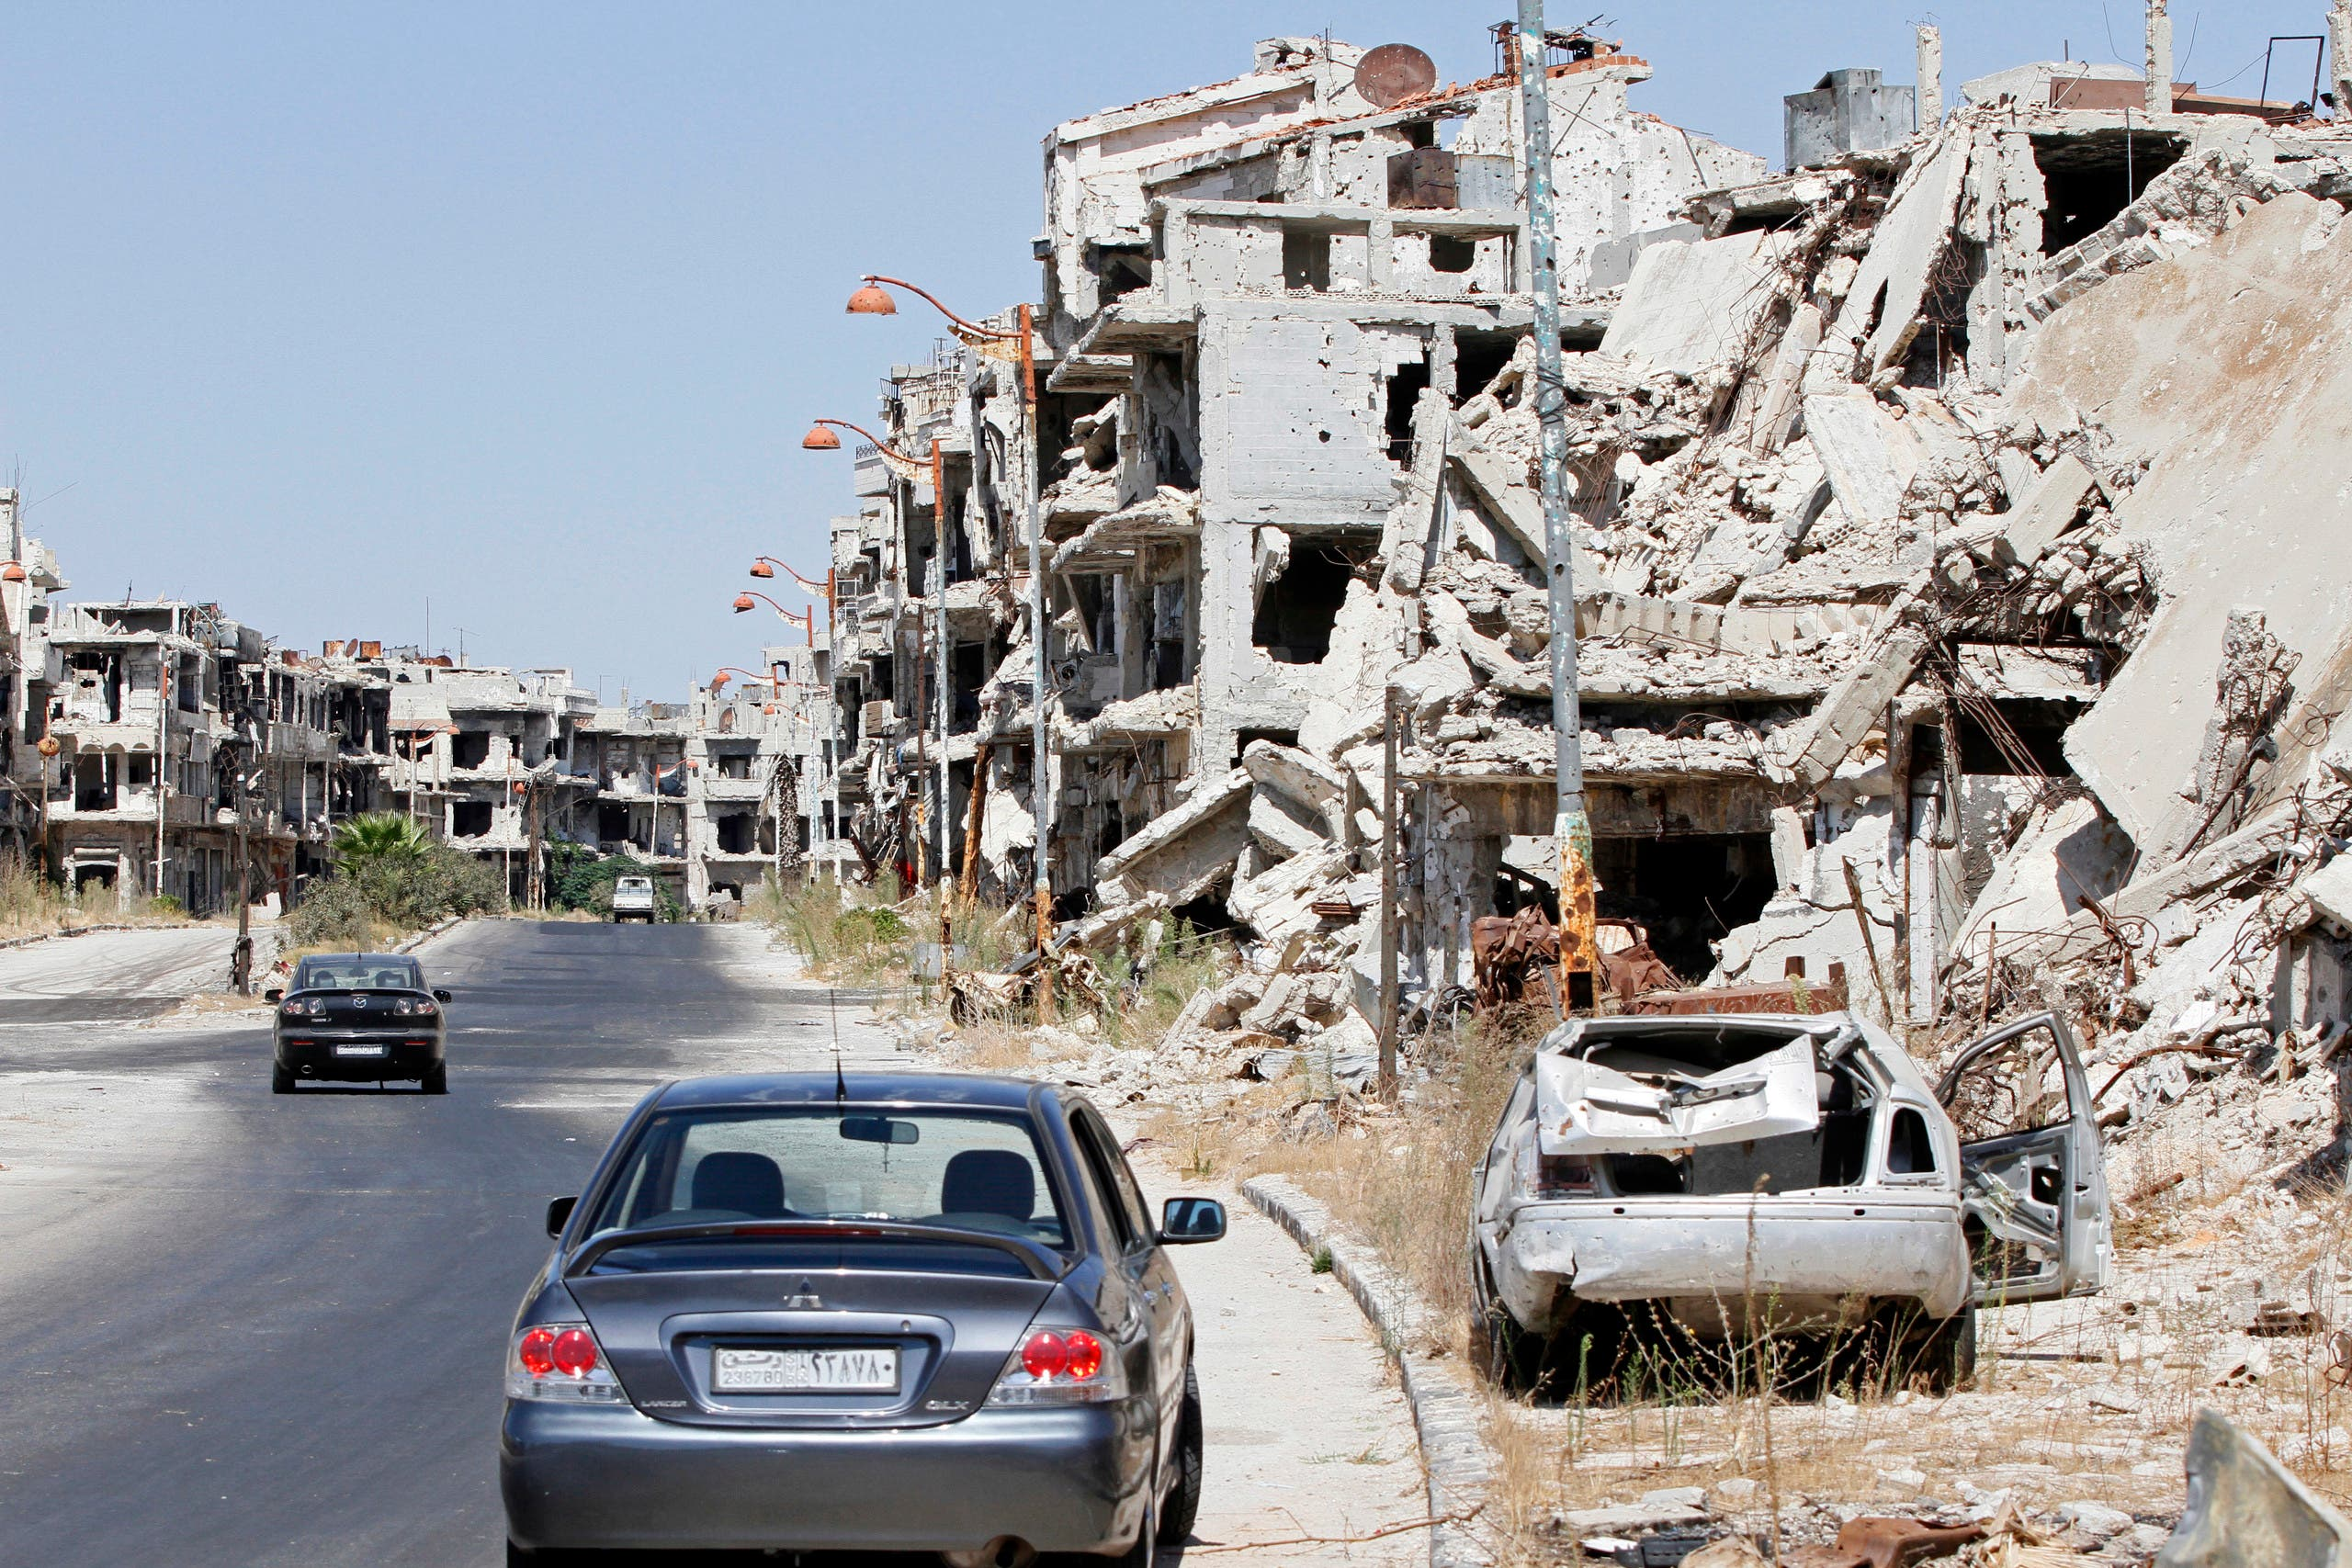 Damaged buildings and rubble line a street in Homs, Syria, Sept. 19, 2016. (ap)